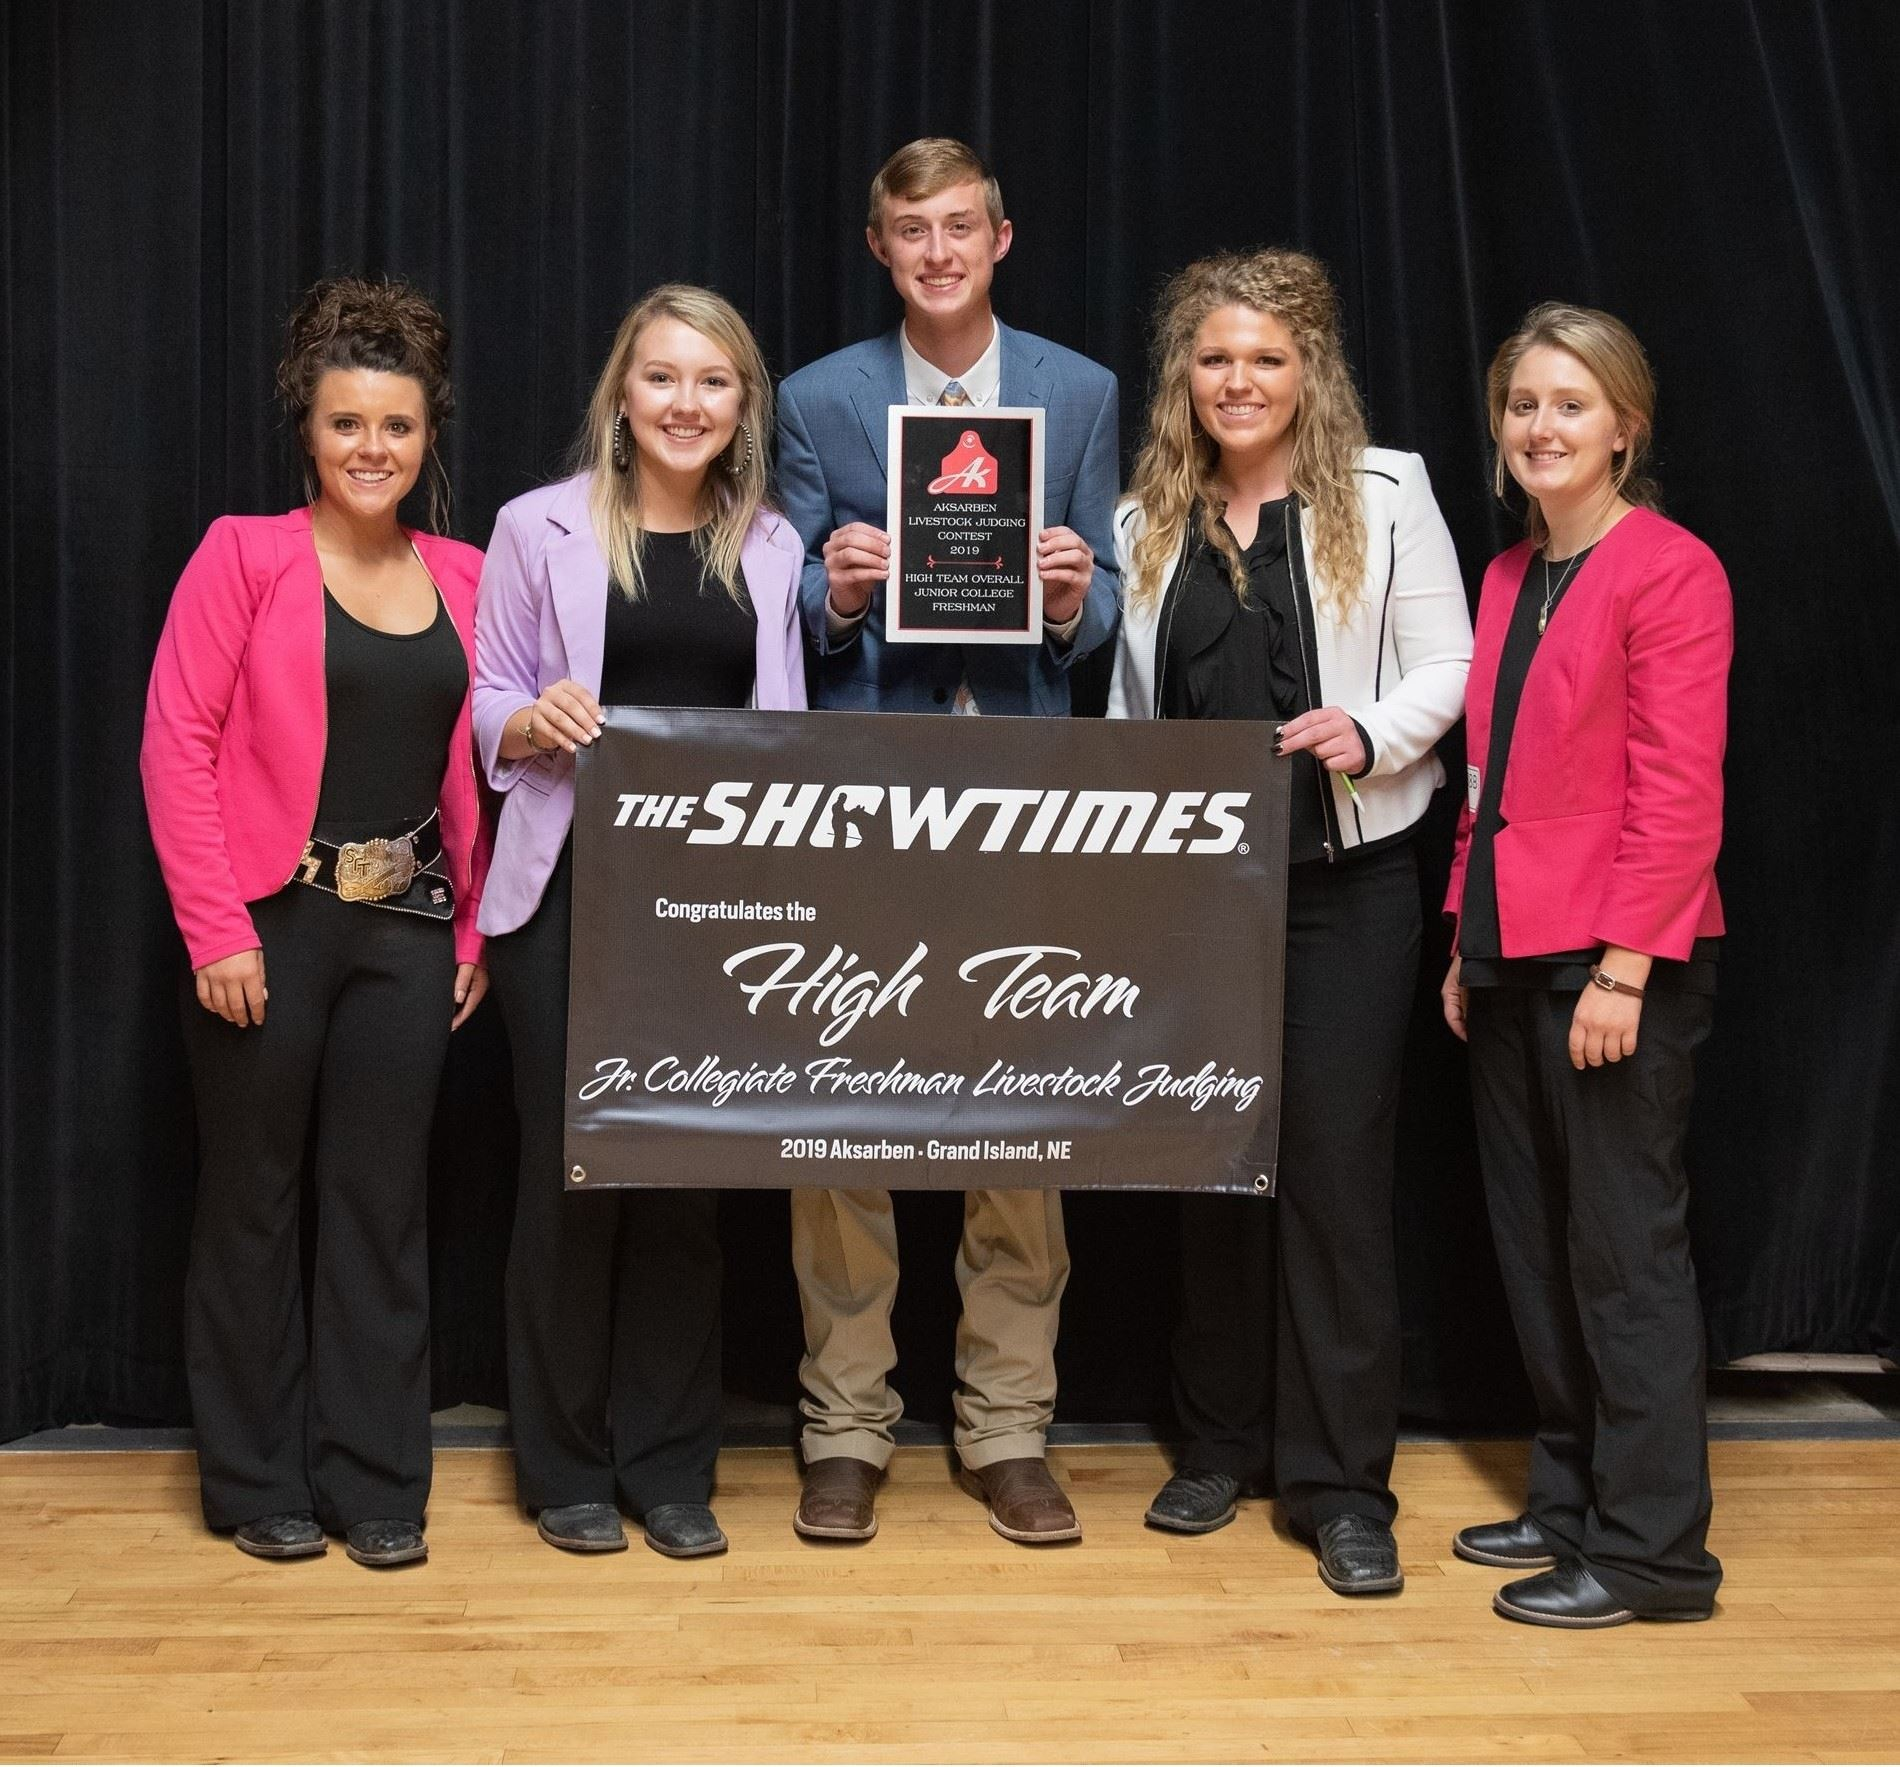 2019 High Team Jr. Collegiate Freshman Livestock Judging